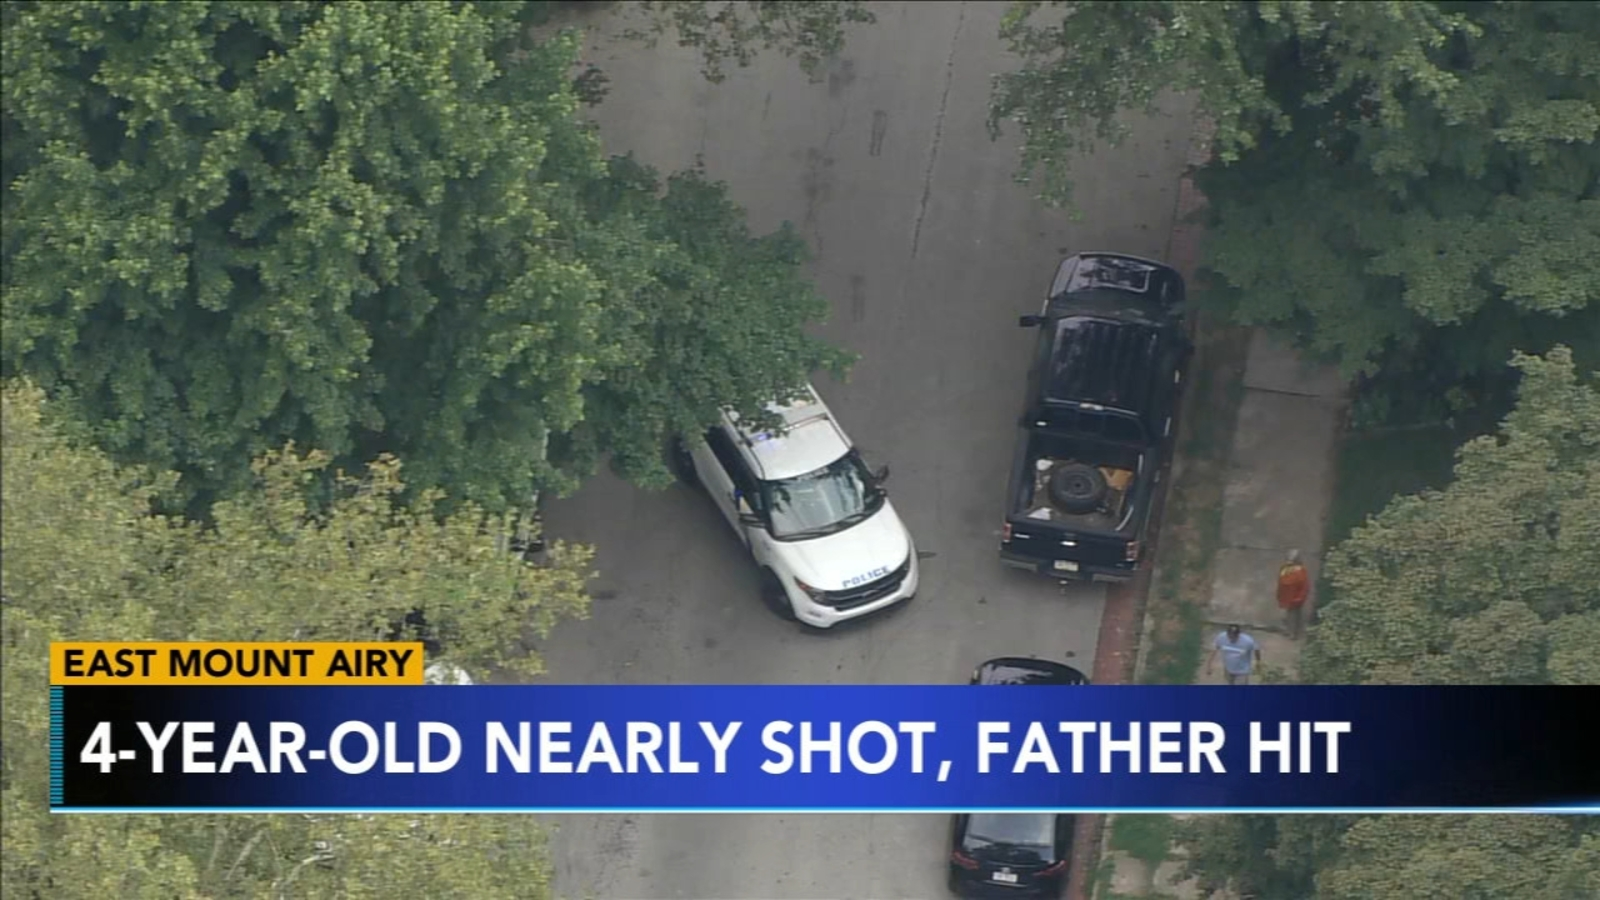 Girl, 4, escapes hail of bullets in East Mount Airy; father targeted